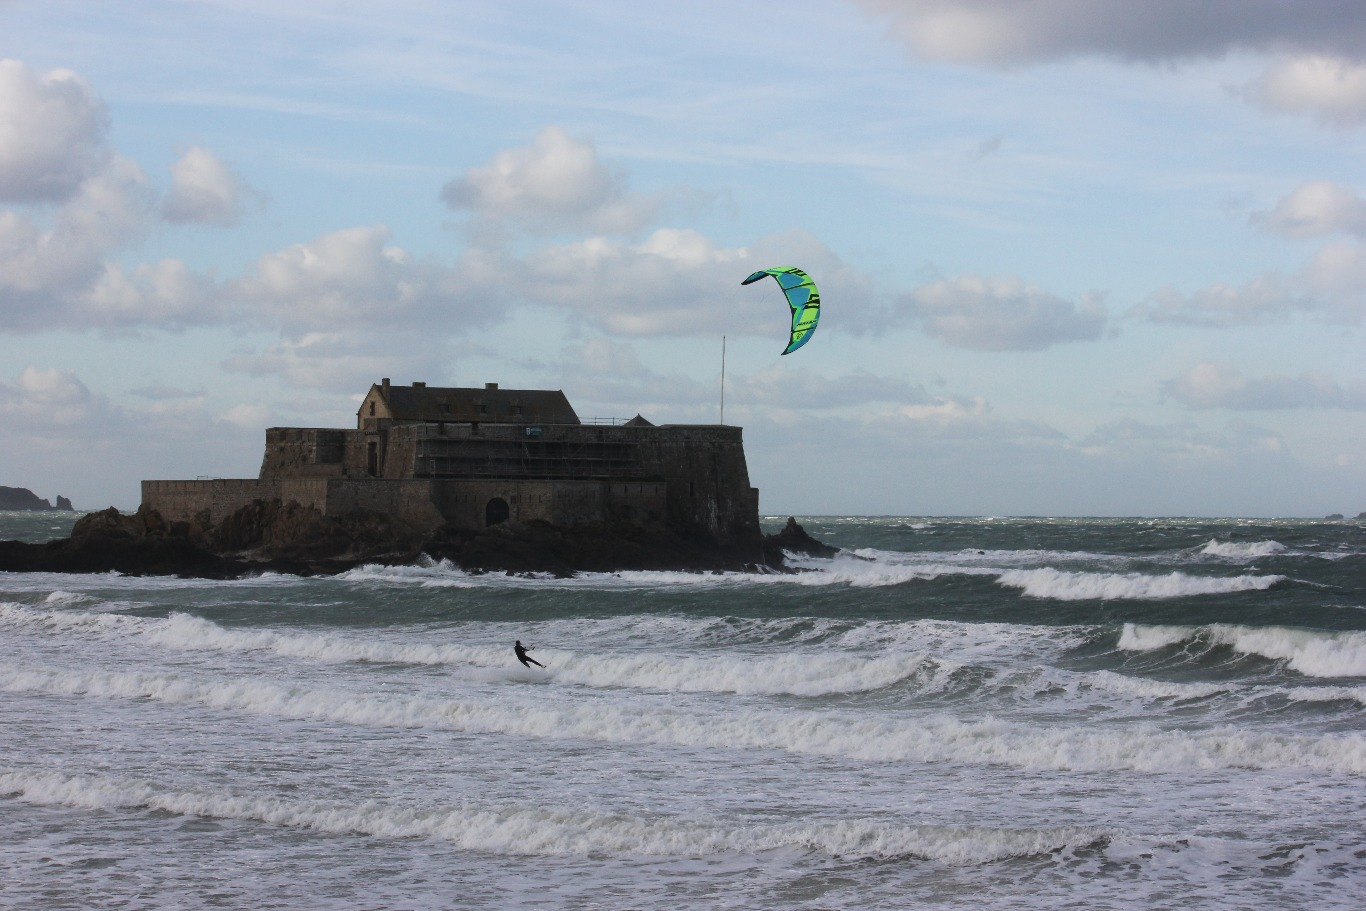 59) france - 2015 - binic (novembre) - Saint-Malo le Grand Bée